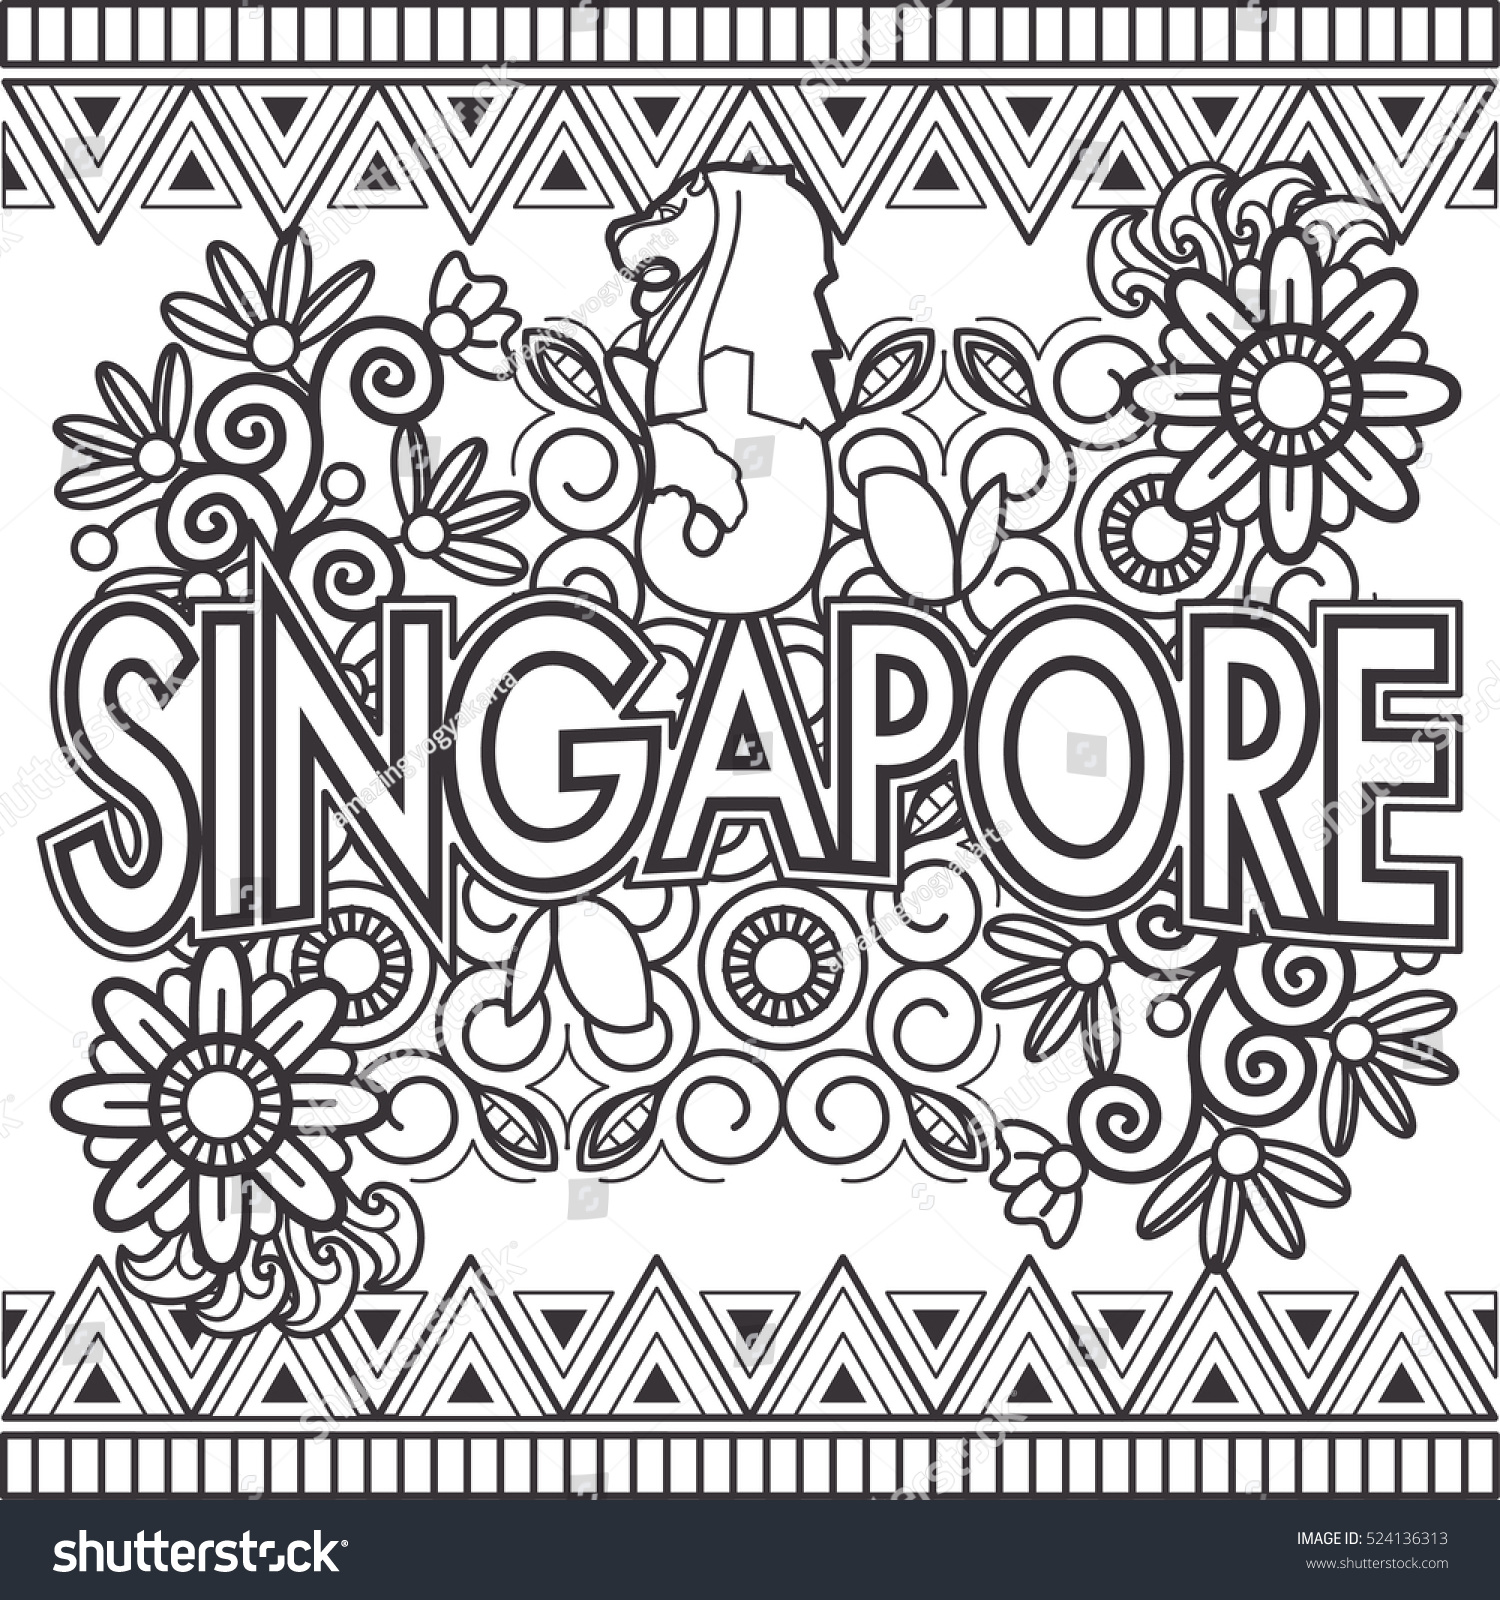 Colouring book for adults singapore - Singapore Doodle Art Text